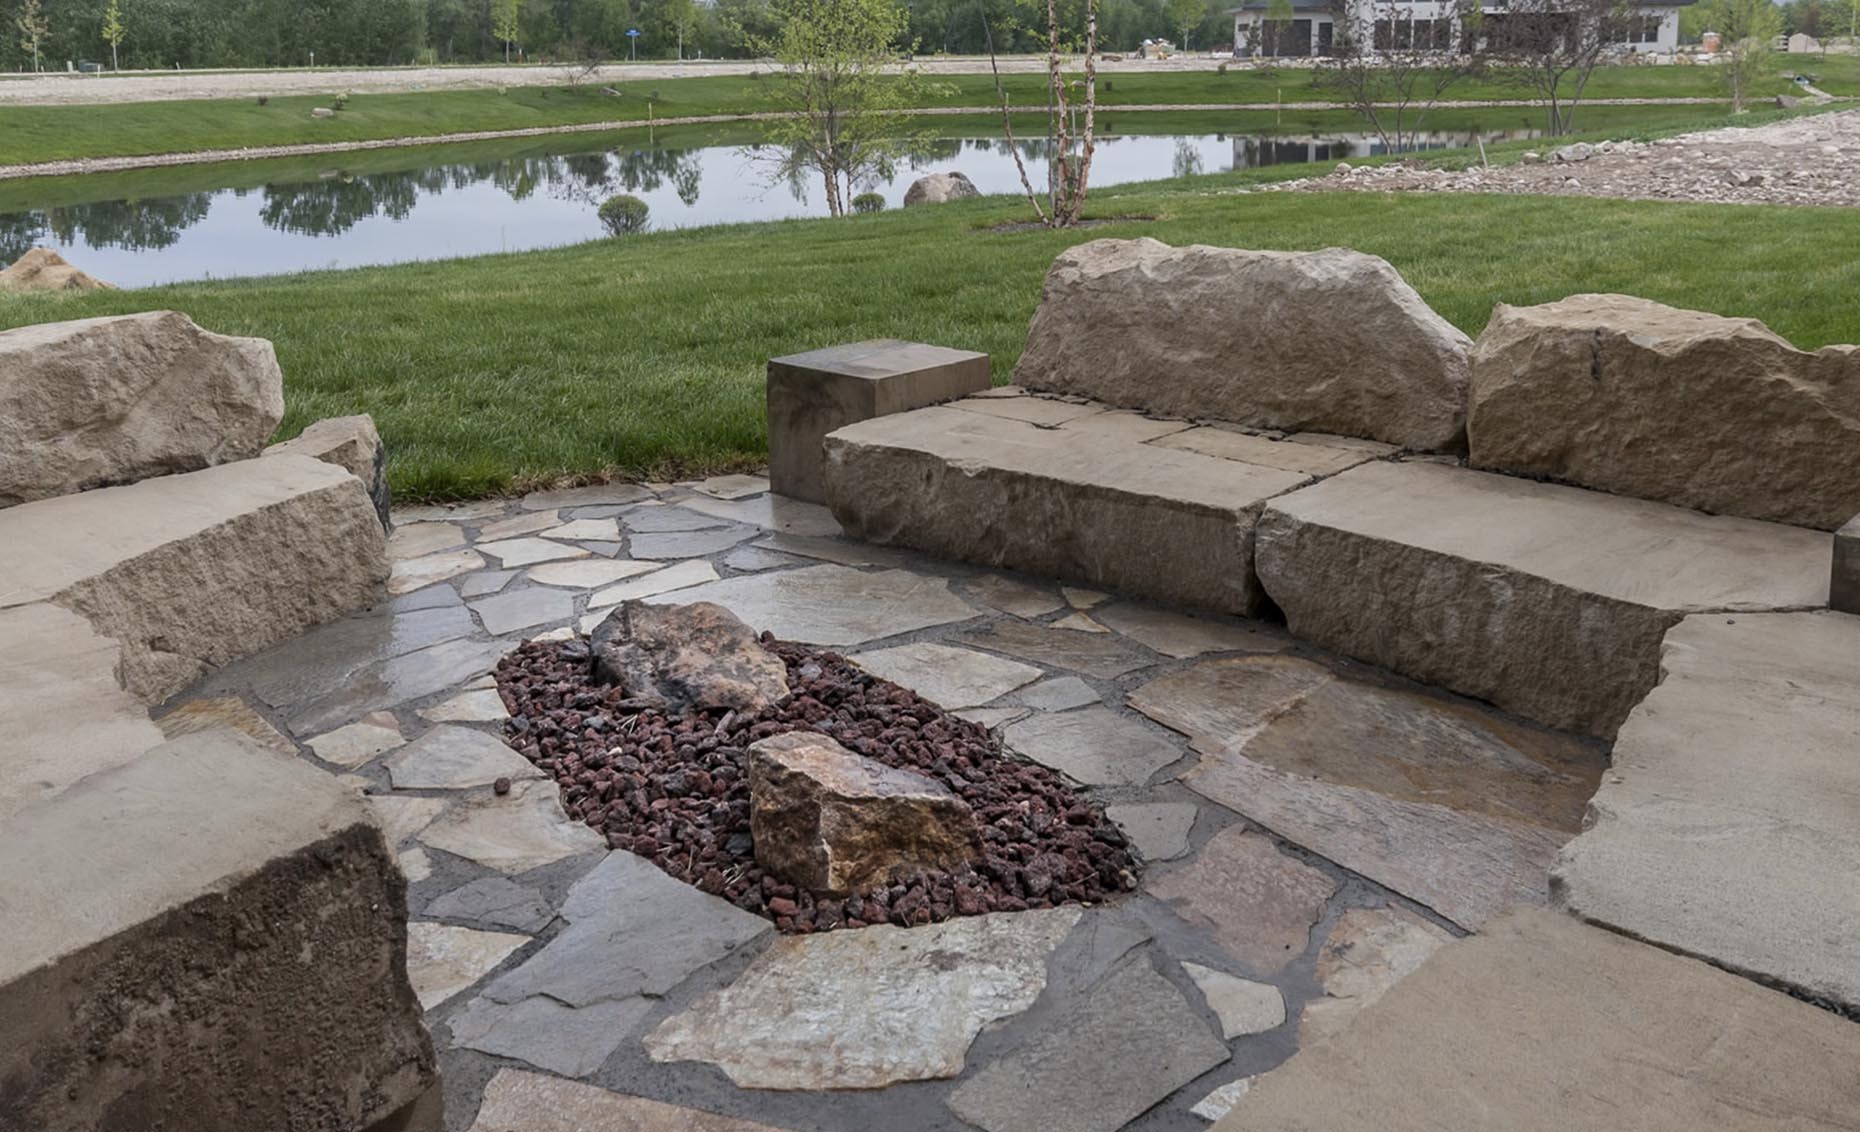 The Salmon Falls House Backyard Patio Furniture Made of Rocks